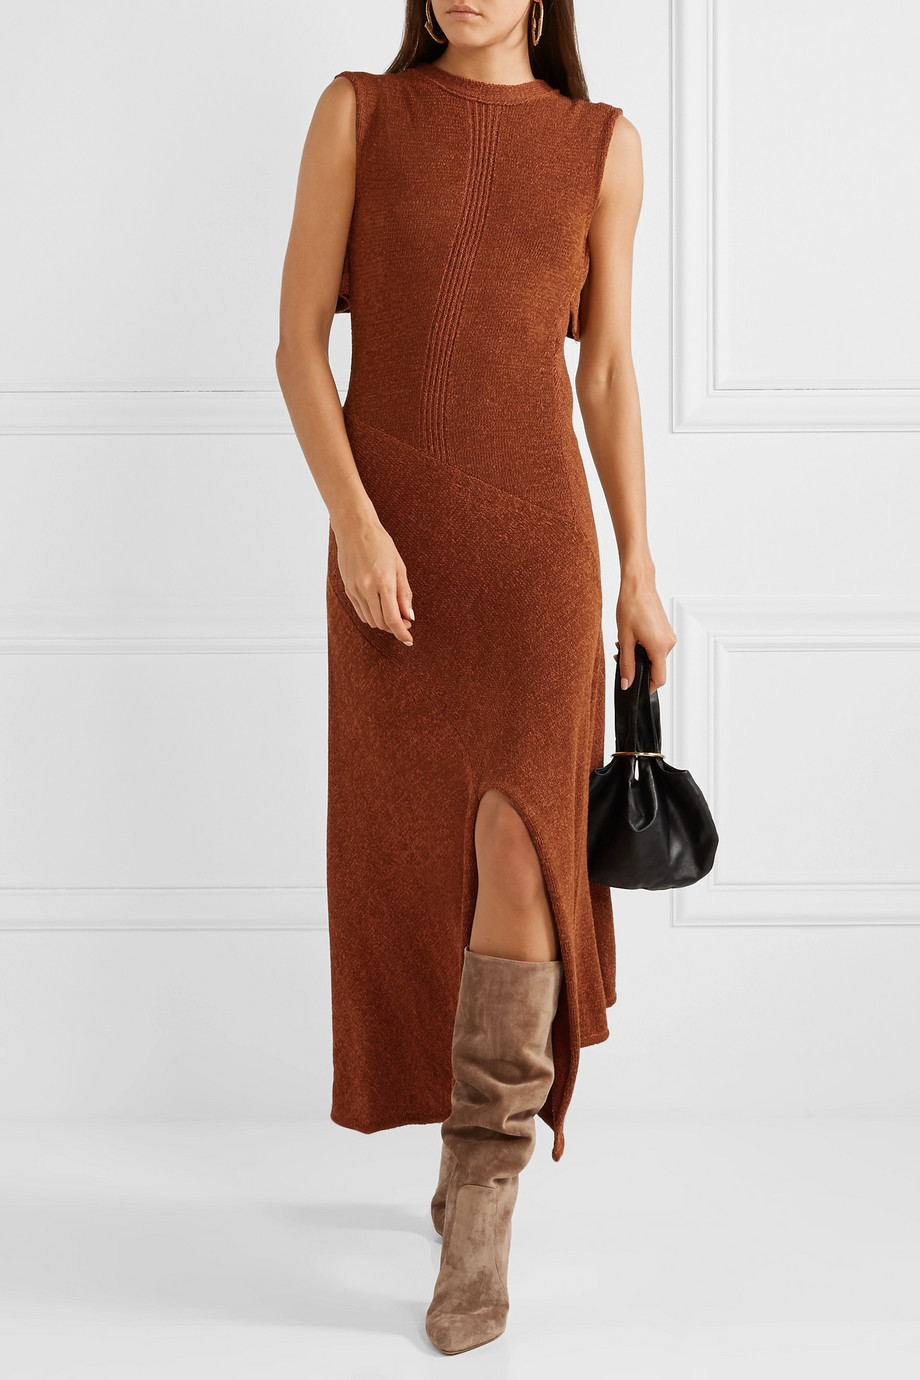 Spring Boots Trend 2019 - Suede Boots with skirts Gianvito Rossi